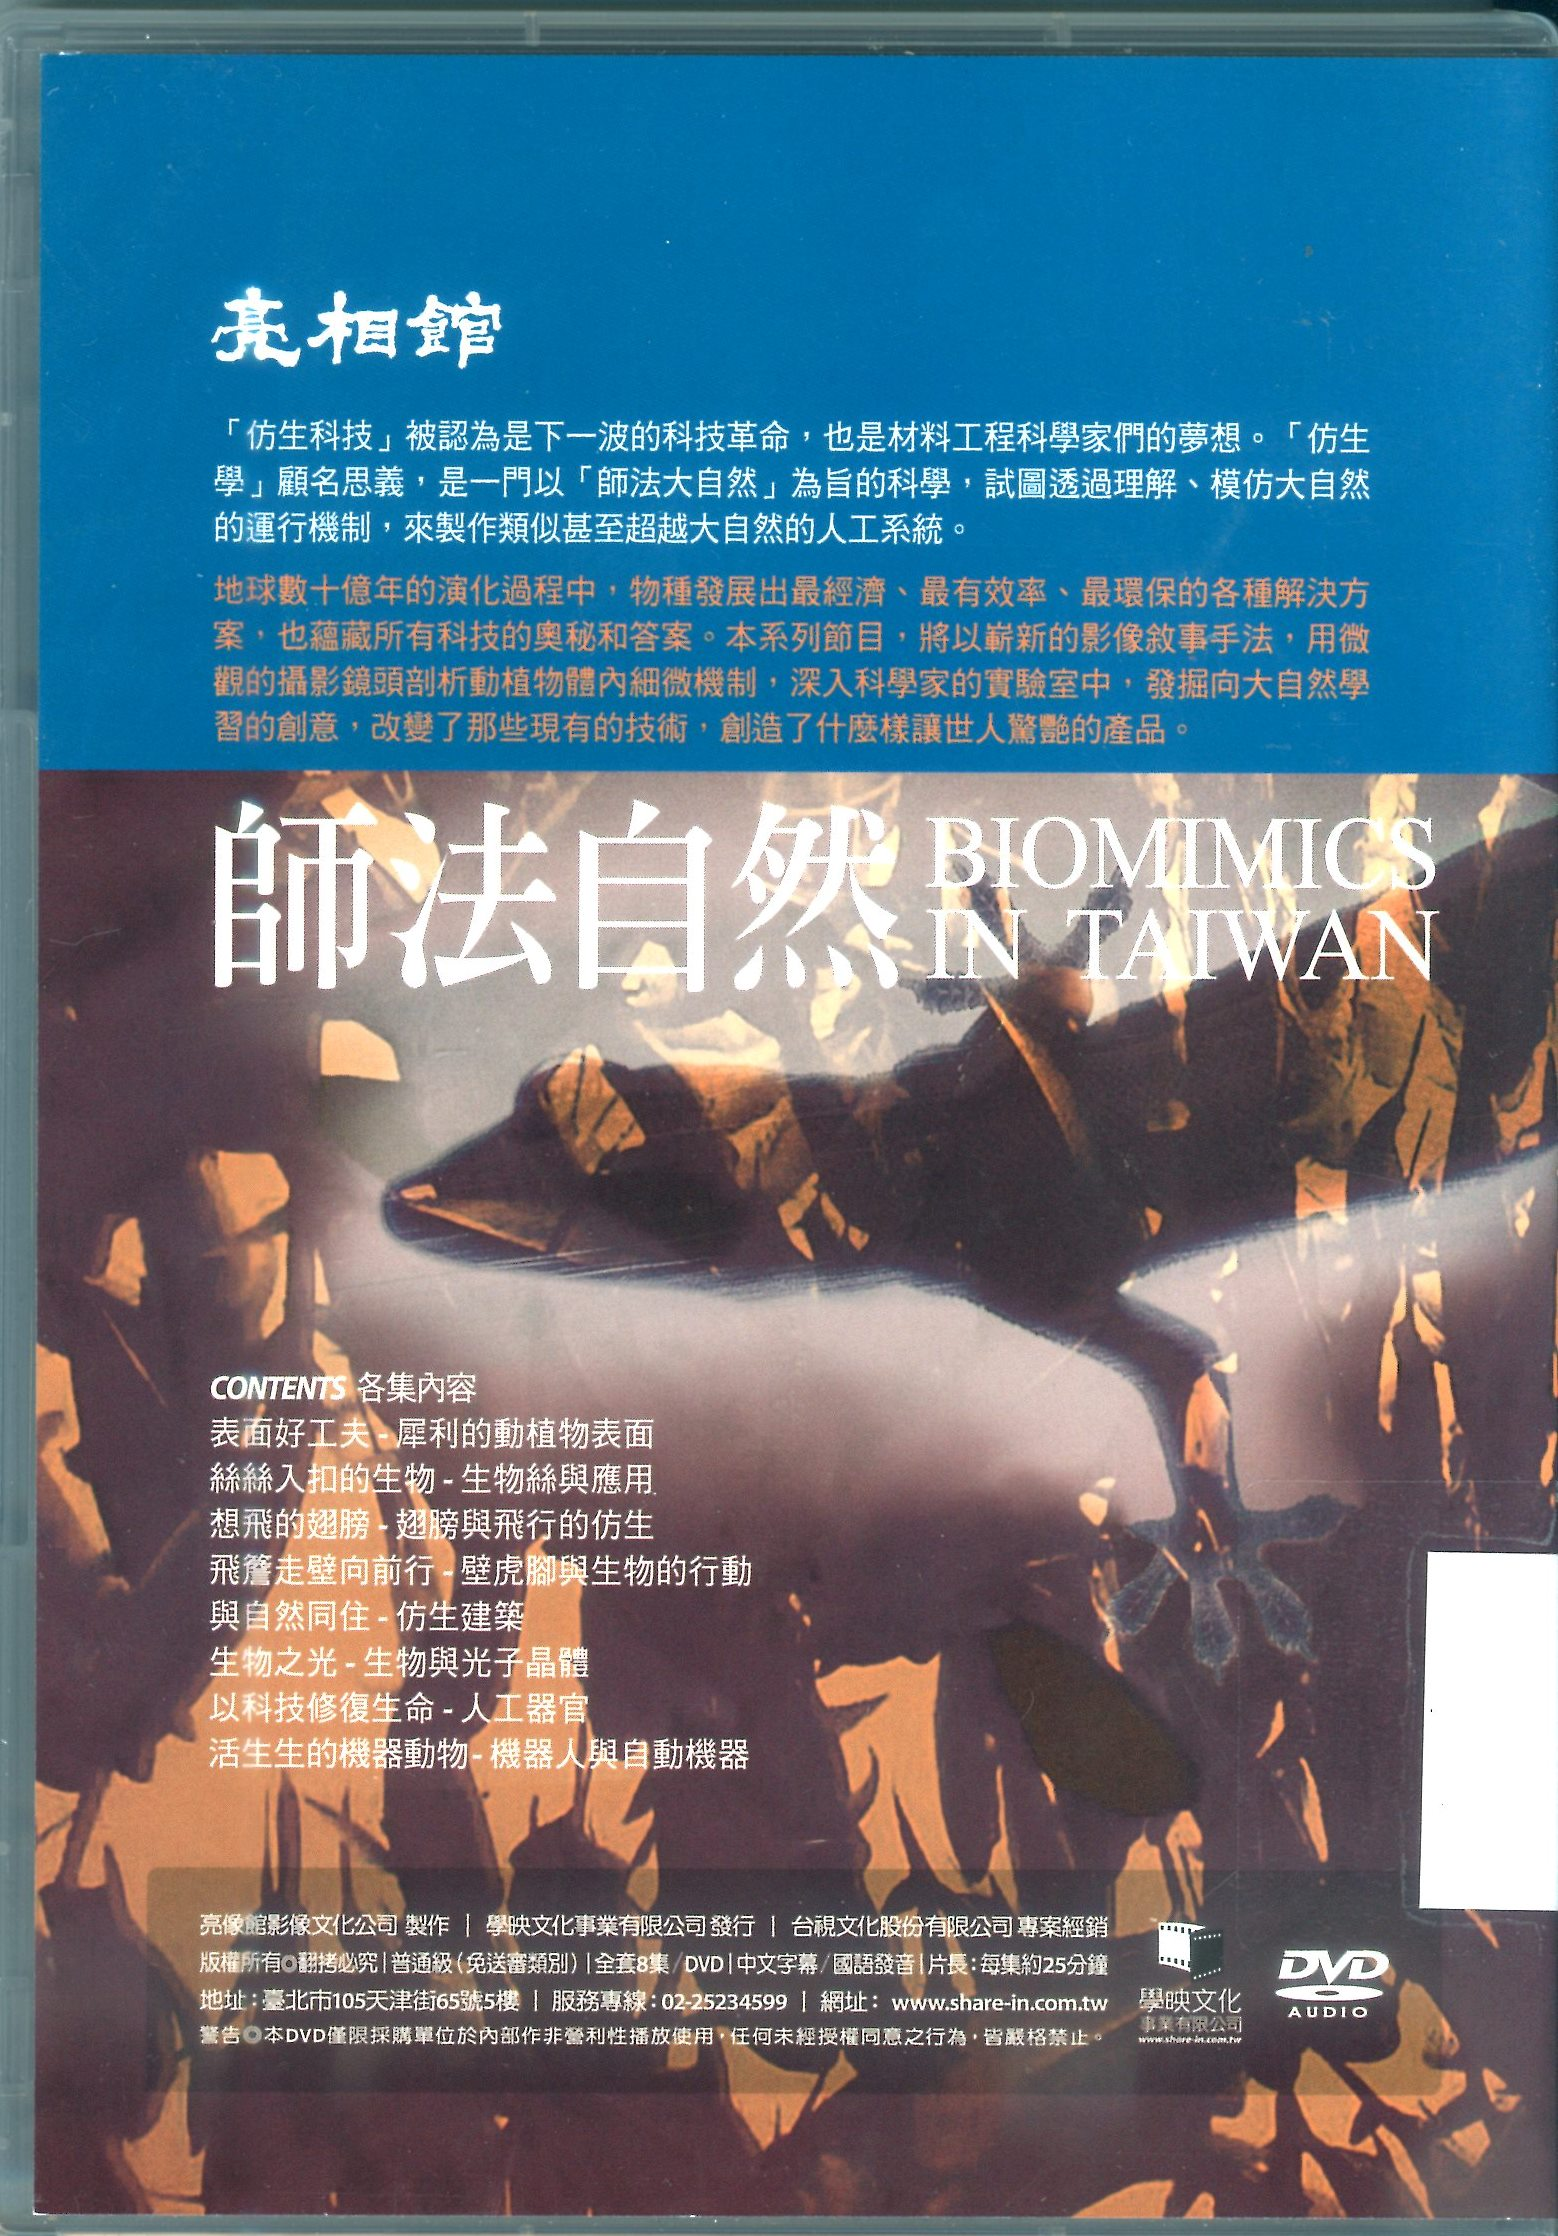 師法自然 Biomimics in Taiwan /